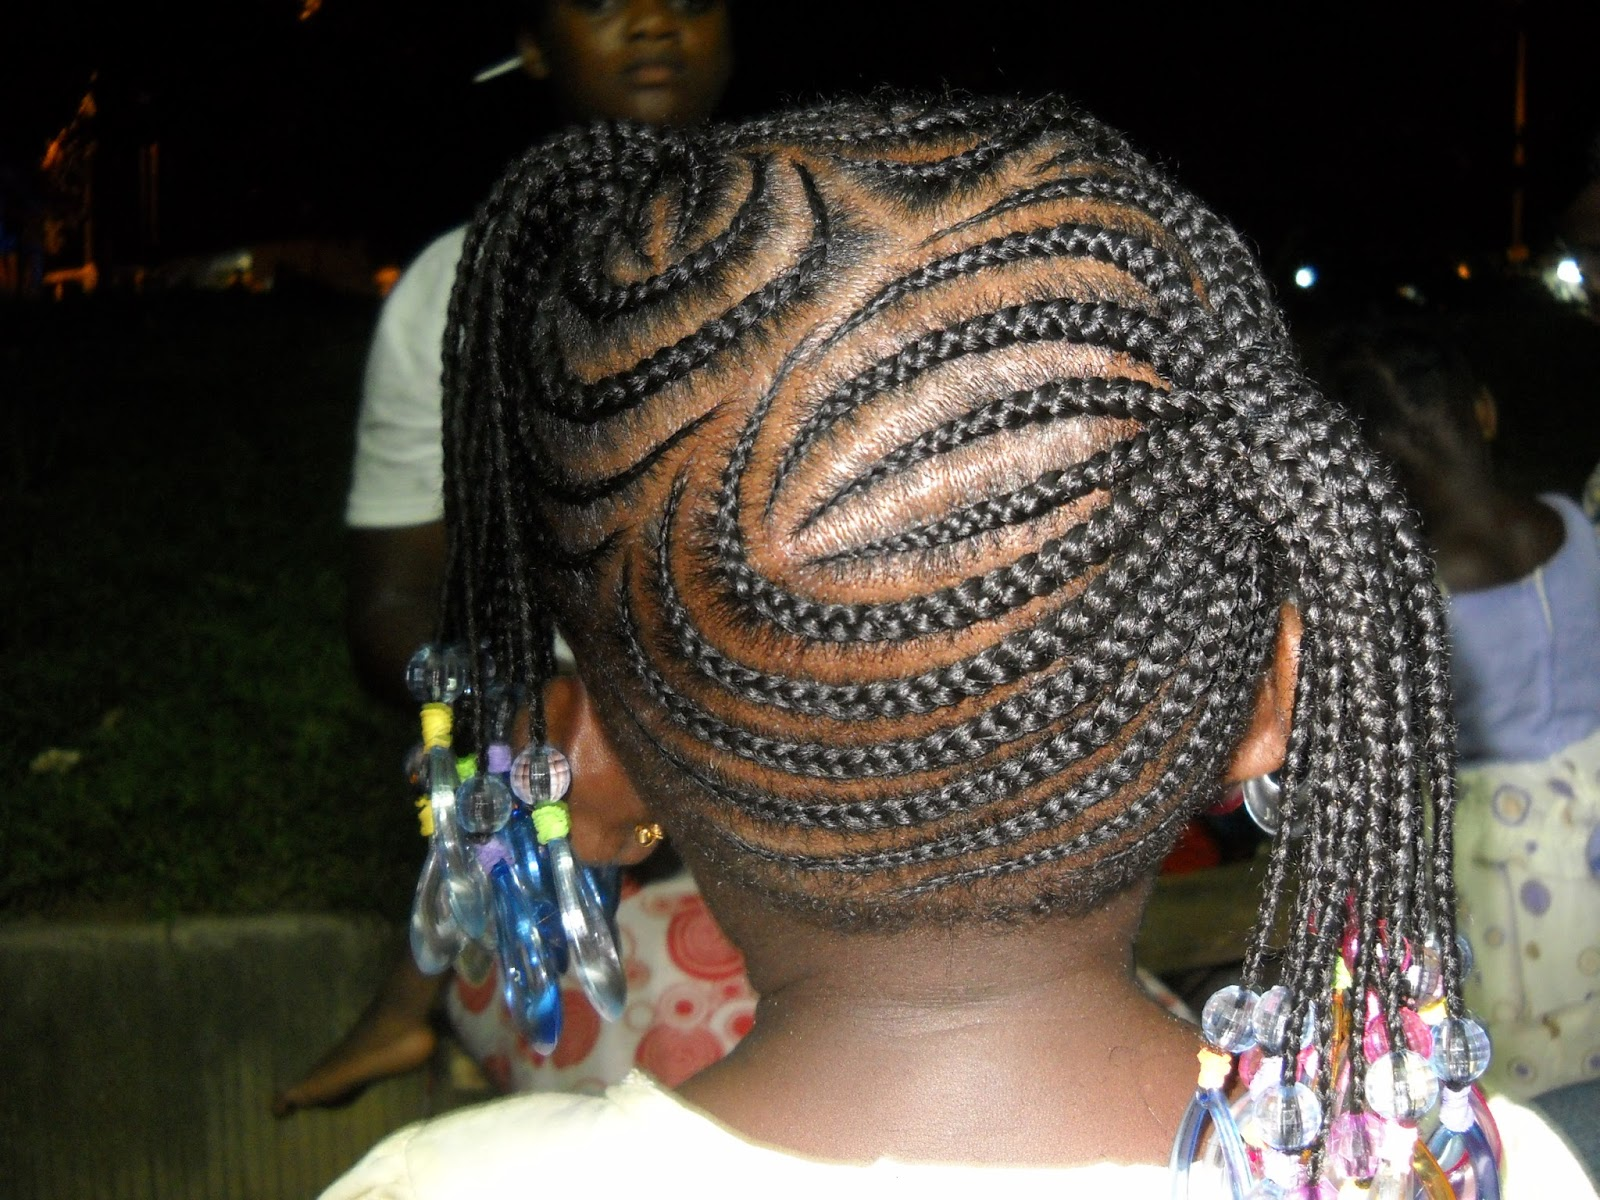 Coiffure Africaine Les Nattes Coiffure Africaine Tresses Blog